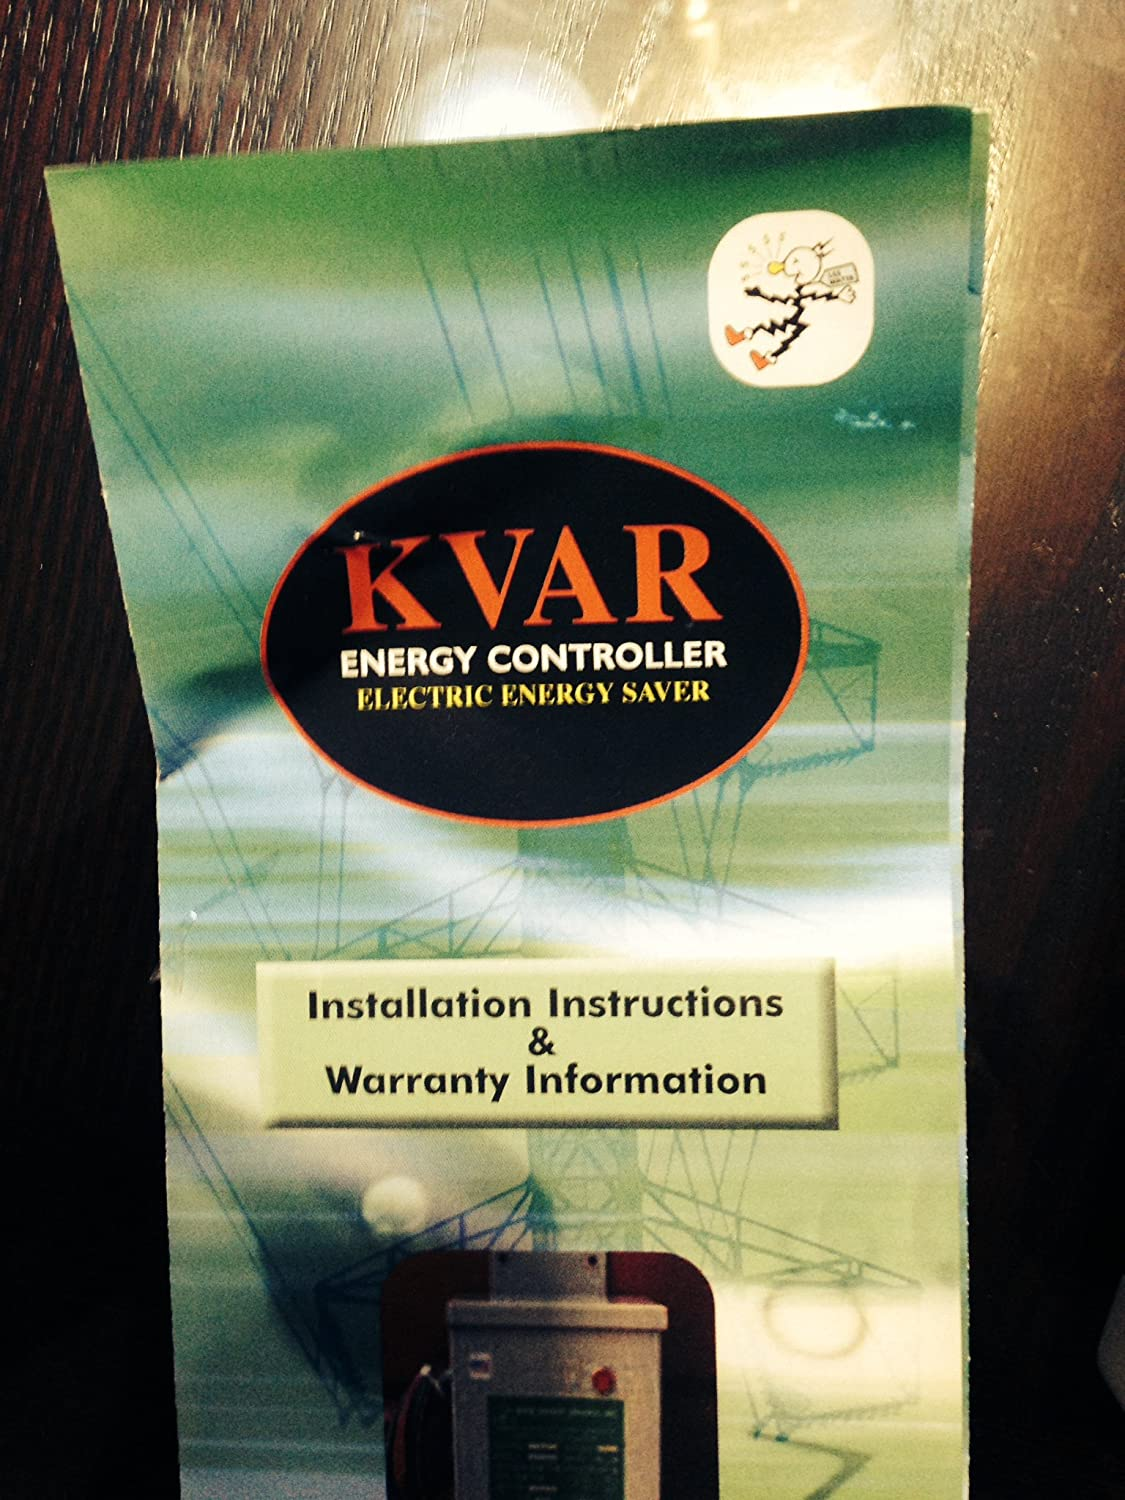 Kvar Energy Saving Controller Save 8 To 10 Per Month Circuit Design For Sale Power Saver And Electricity Optimizer Buy On Your Electric Bill Home Car Electronics